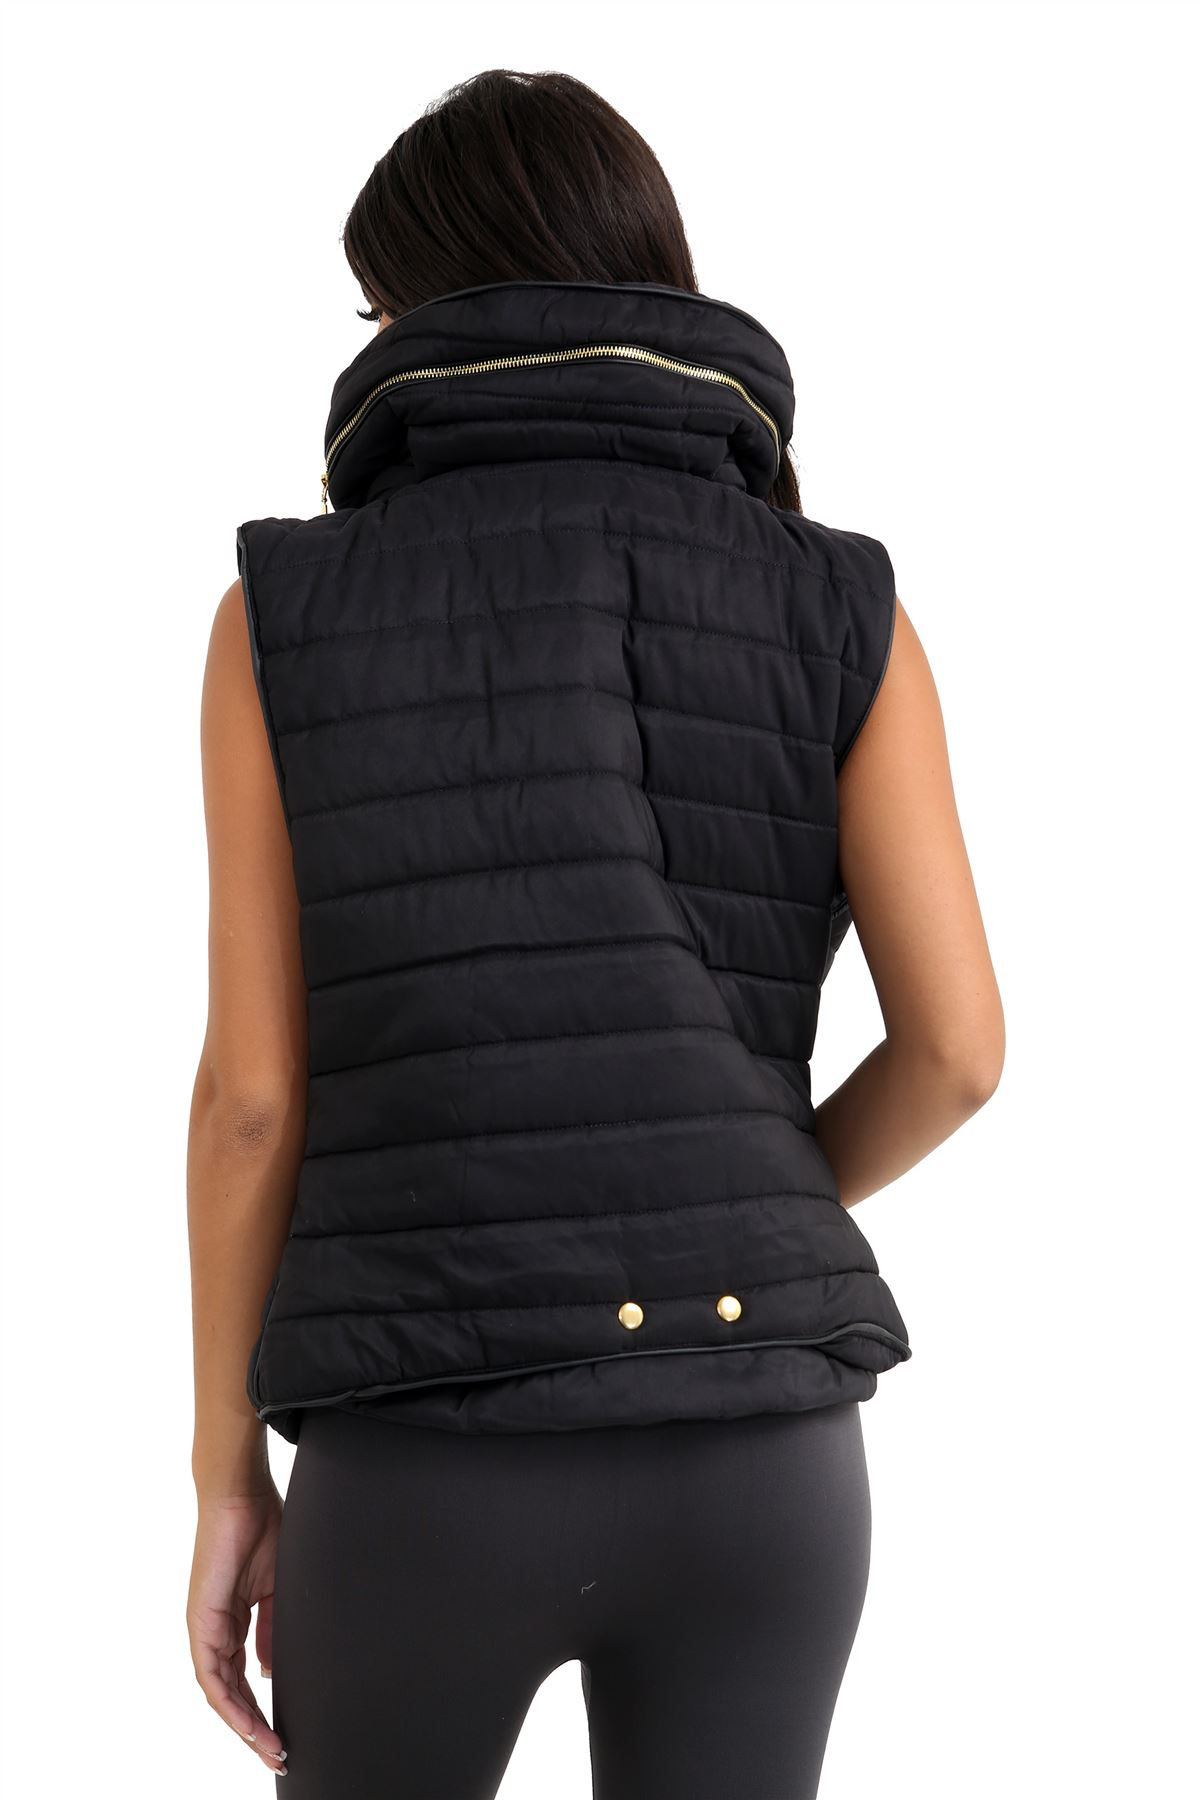 Ladies Gilet Quilted Padded Body Warmer Sleeveless Fur Collar Puffer Jacket Coat